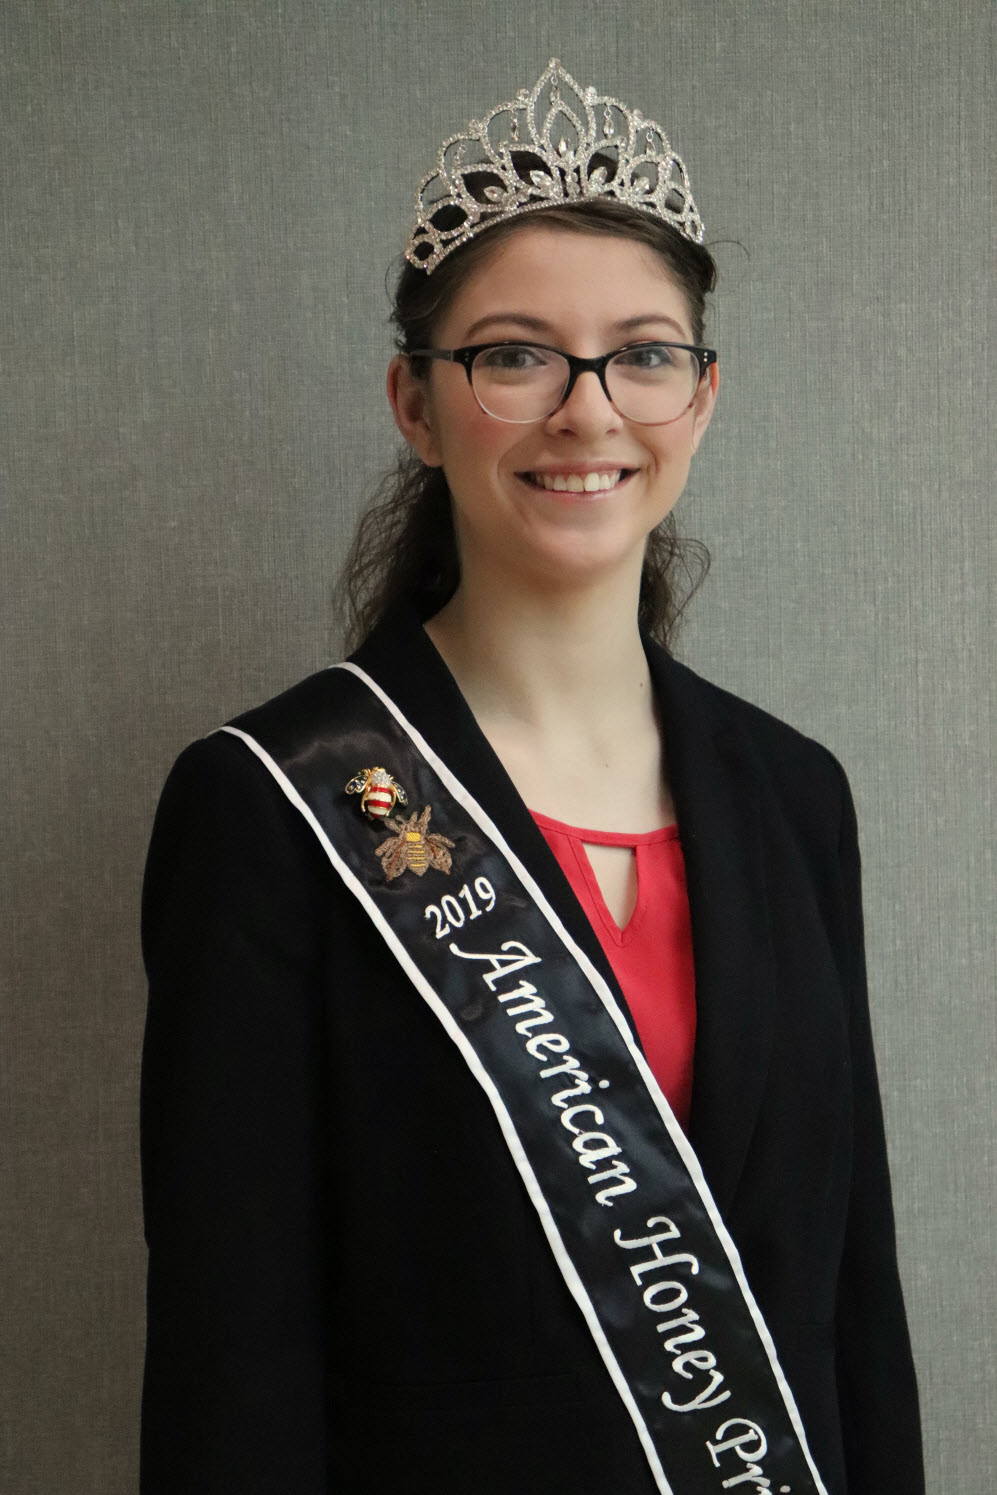 2019 AMERICAN HONEY PRINCESS, NICOLE MEDINA.